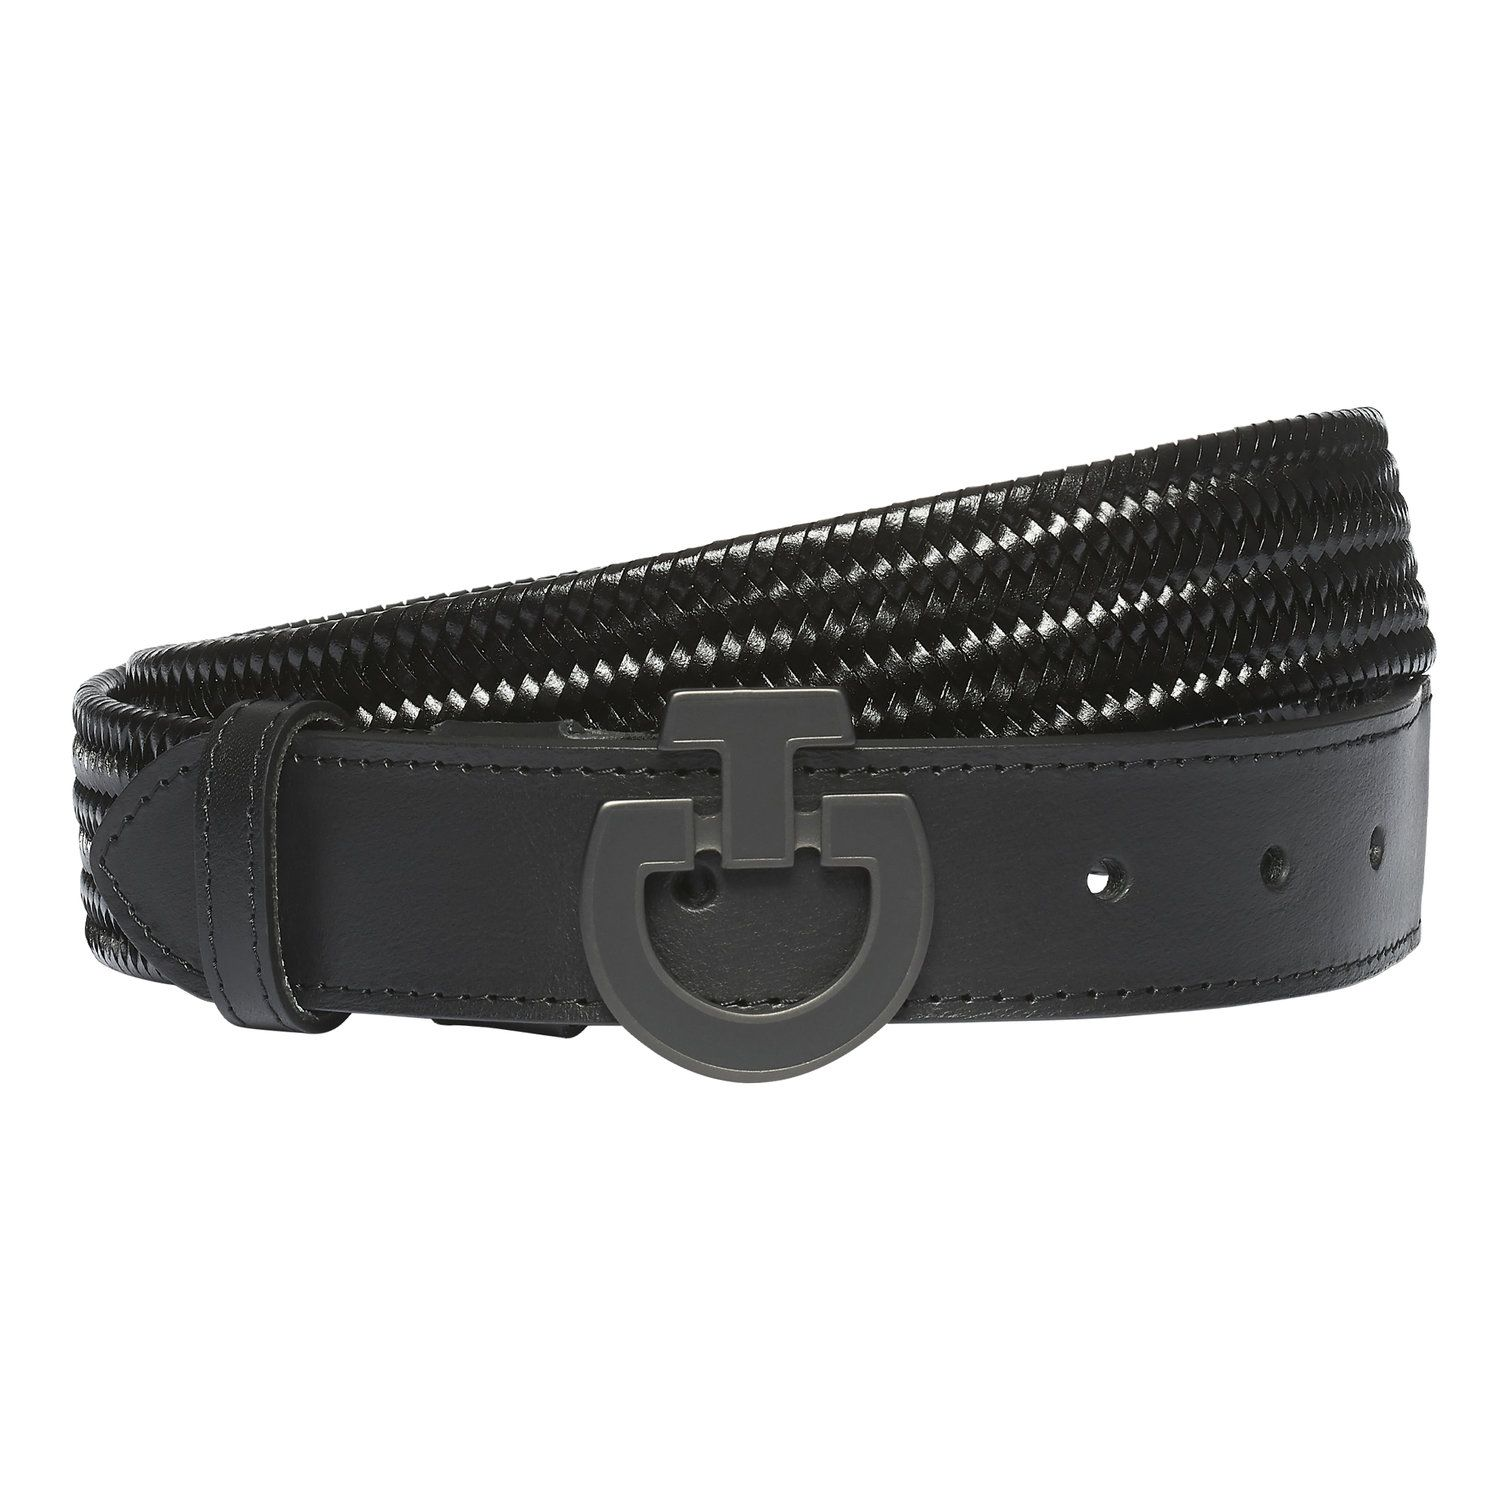 Men's CT buckle belt